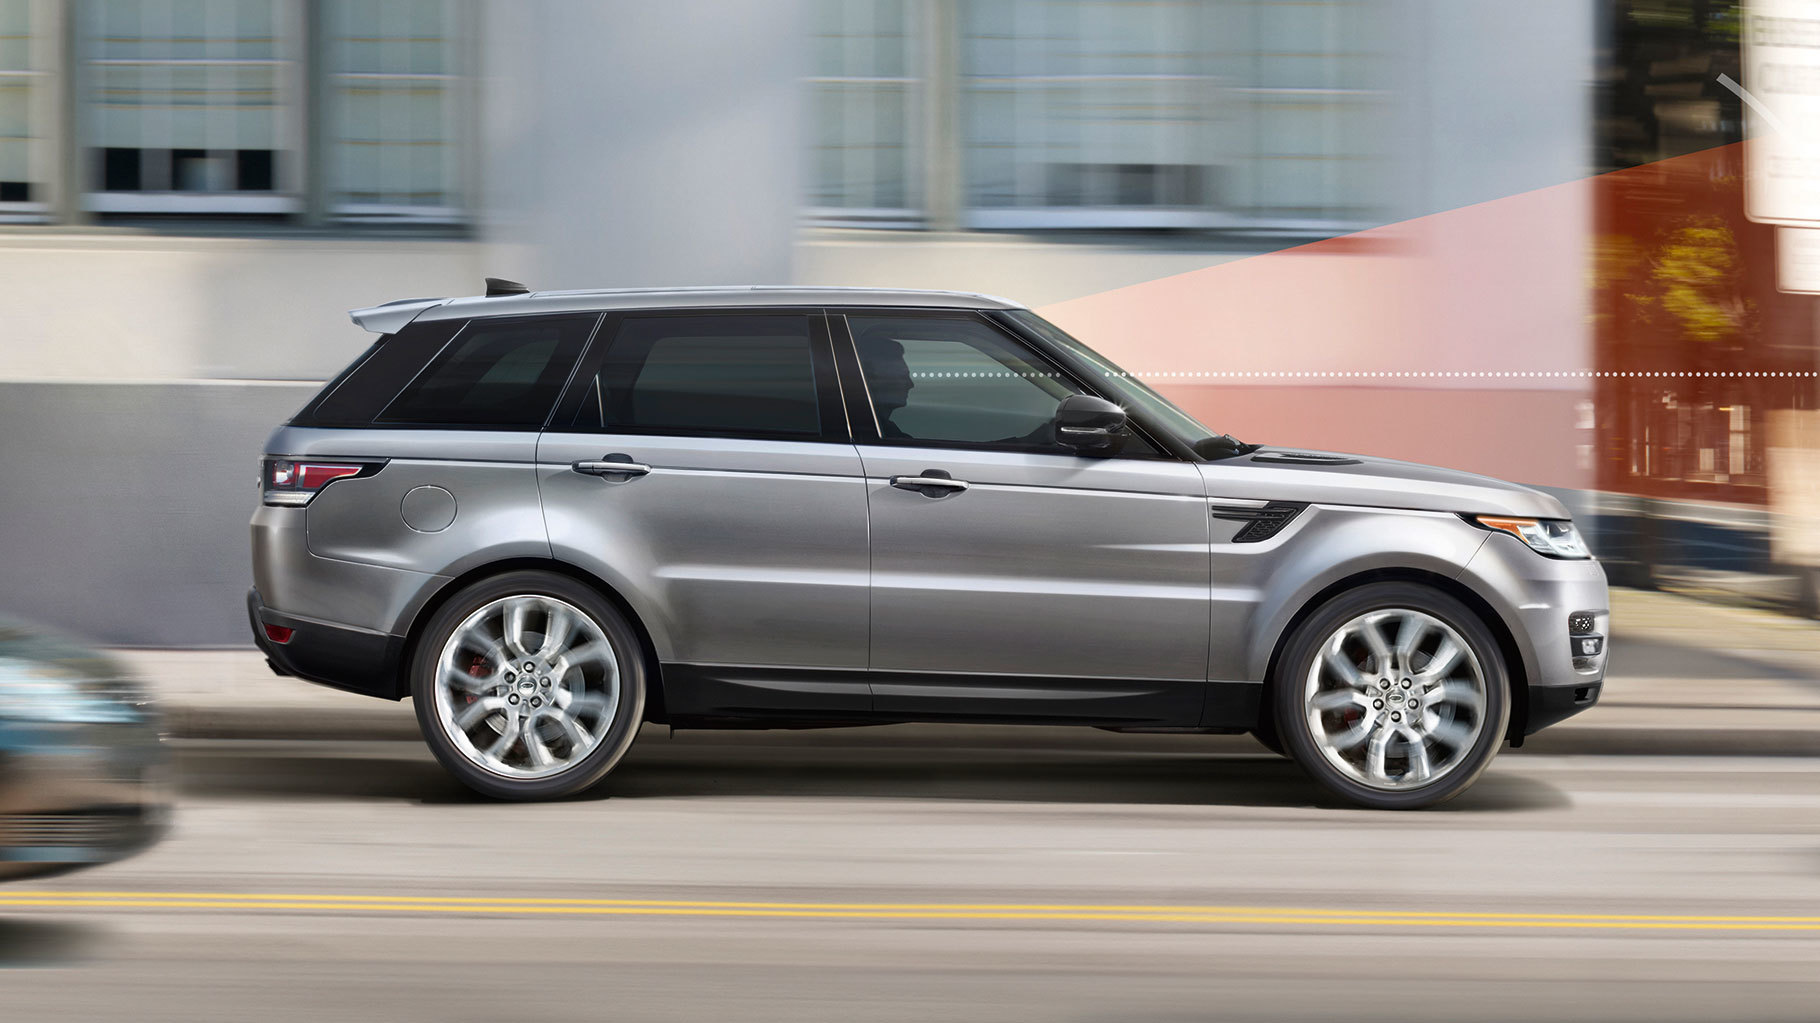 2017 Land Rover Range Rover technology